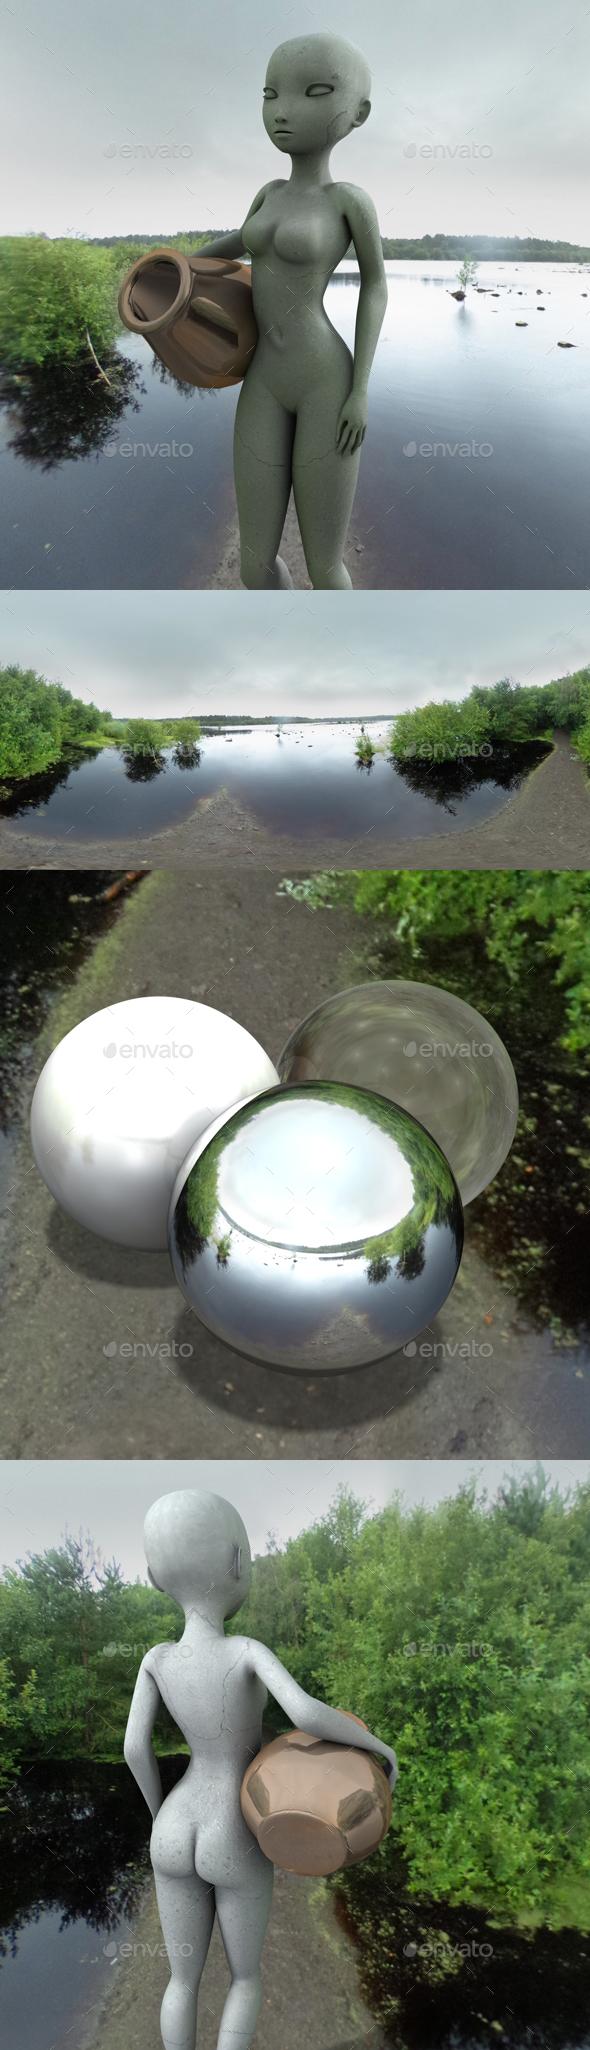 Swampland Lake HDRI - 3DOcean Item for Sale